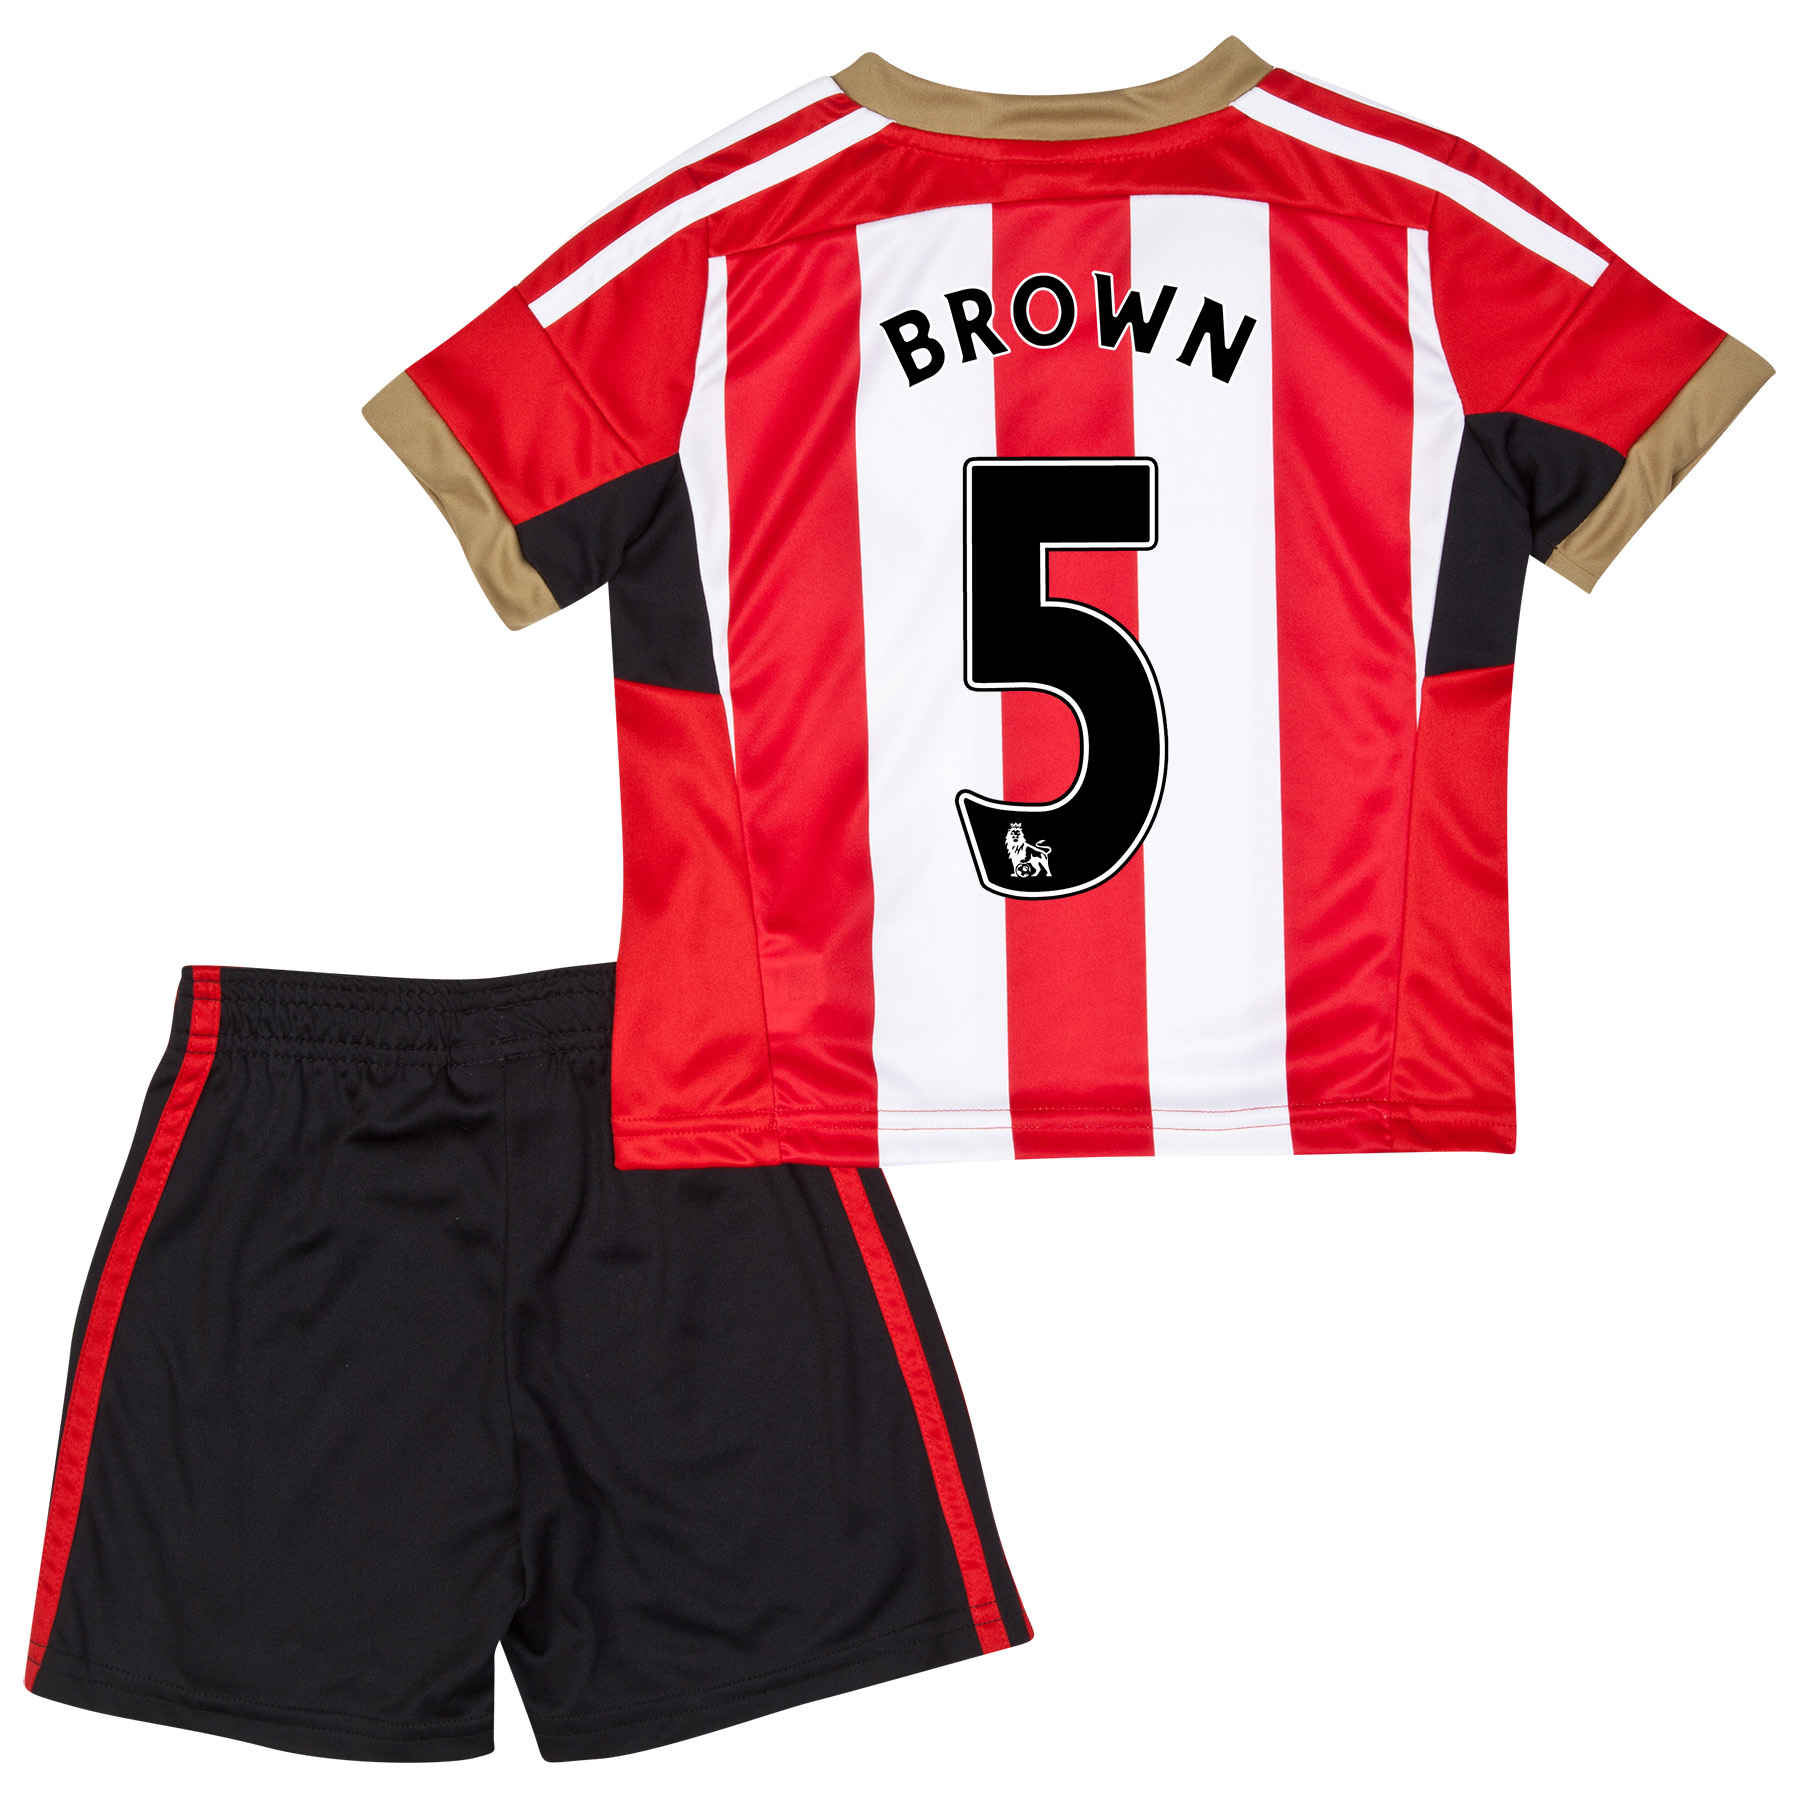 Sunderland Mini Kit 2014/15 Red with Brown 5 printing